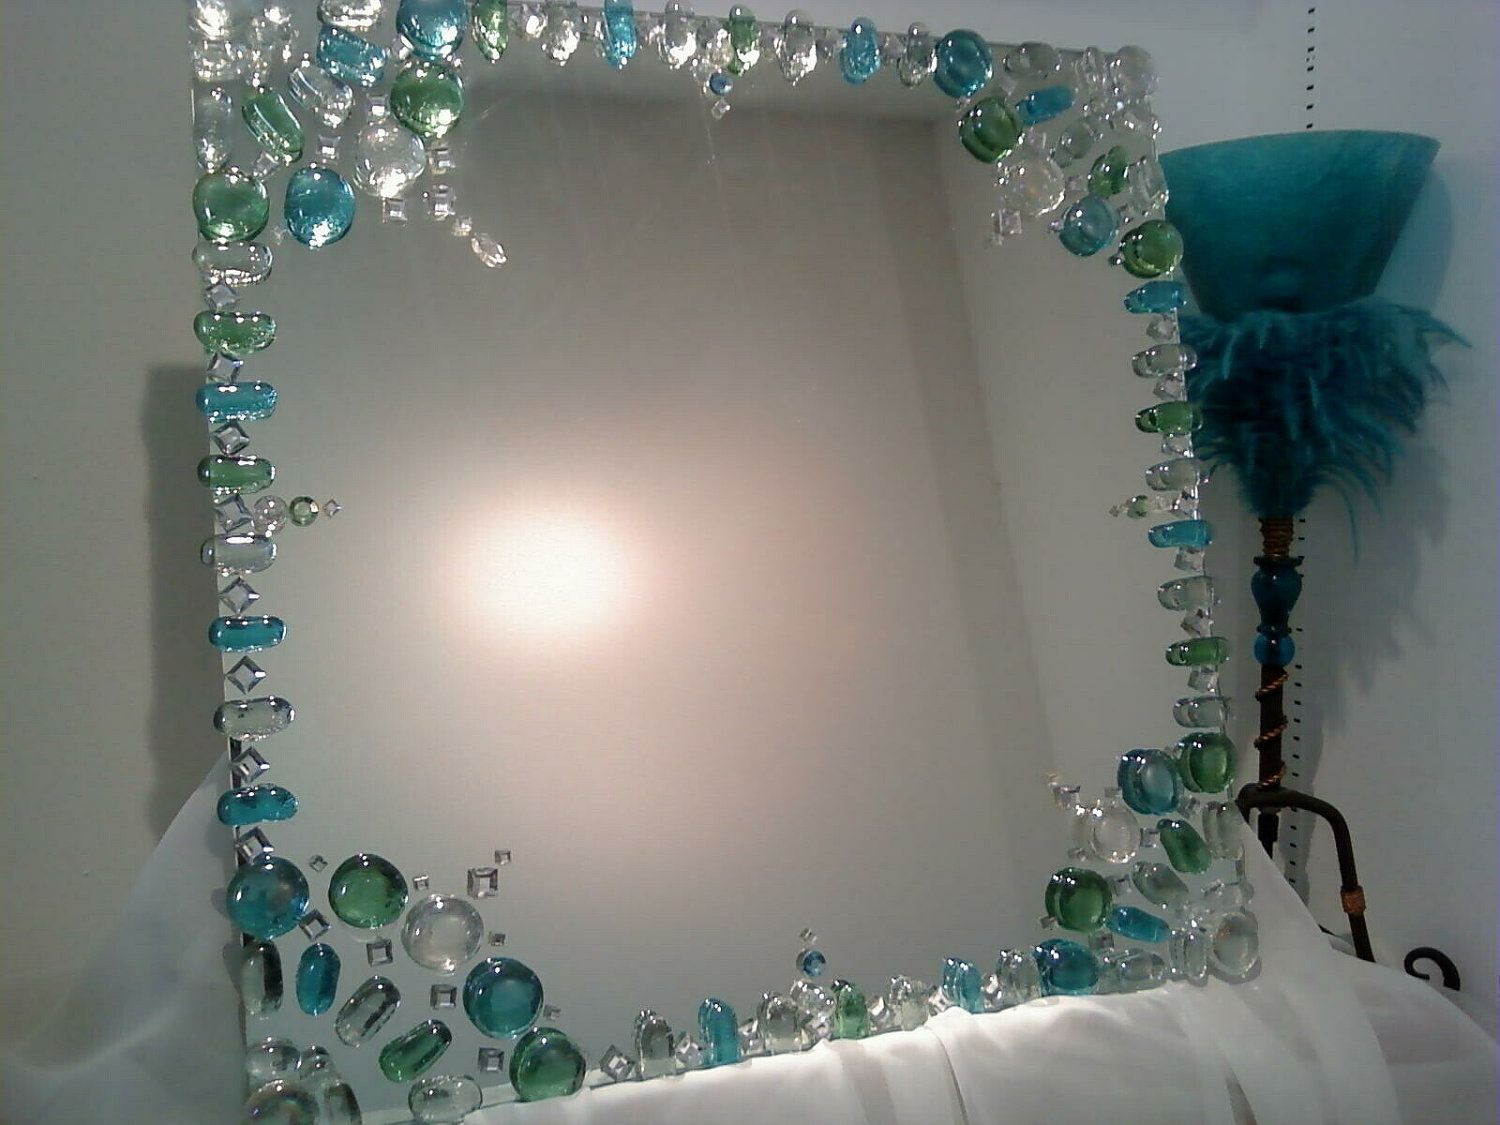 mirror design idea decorating the edge with gems instead